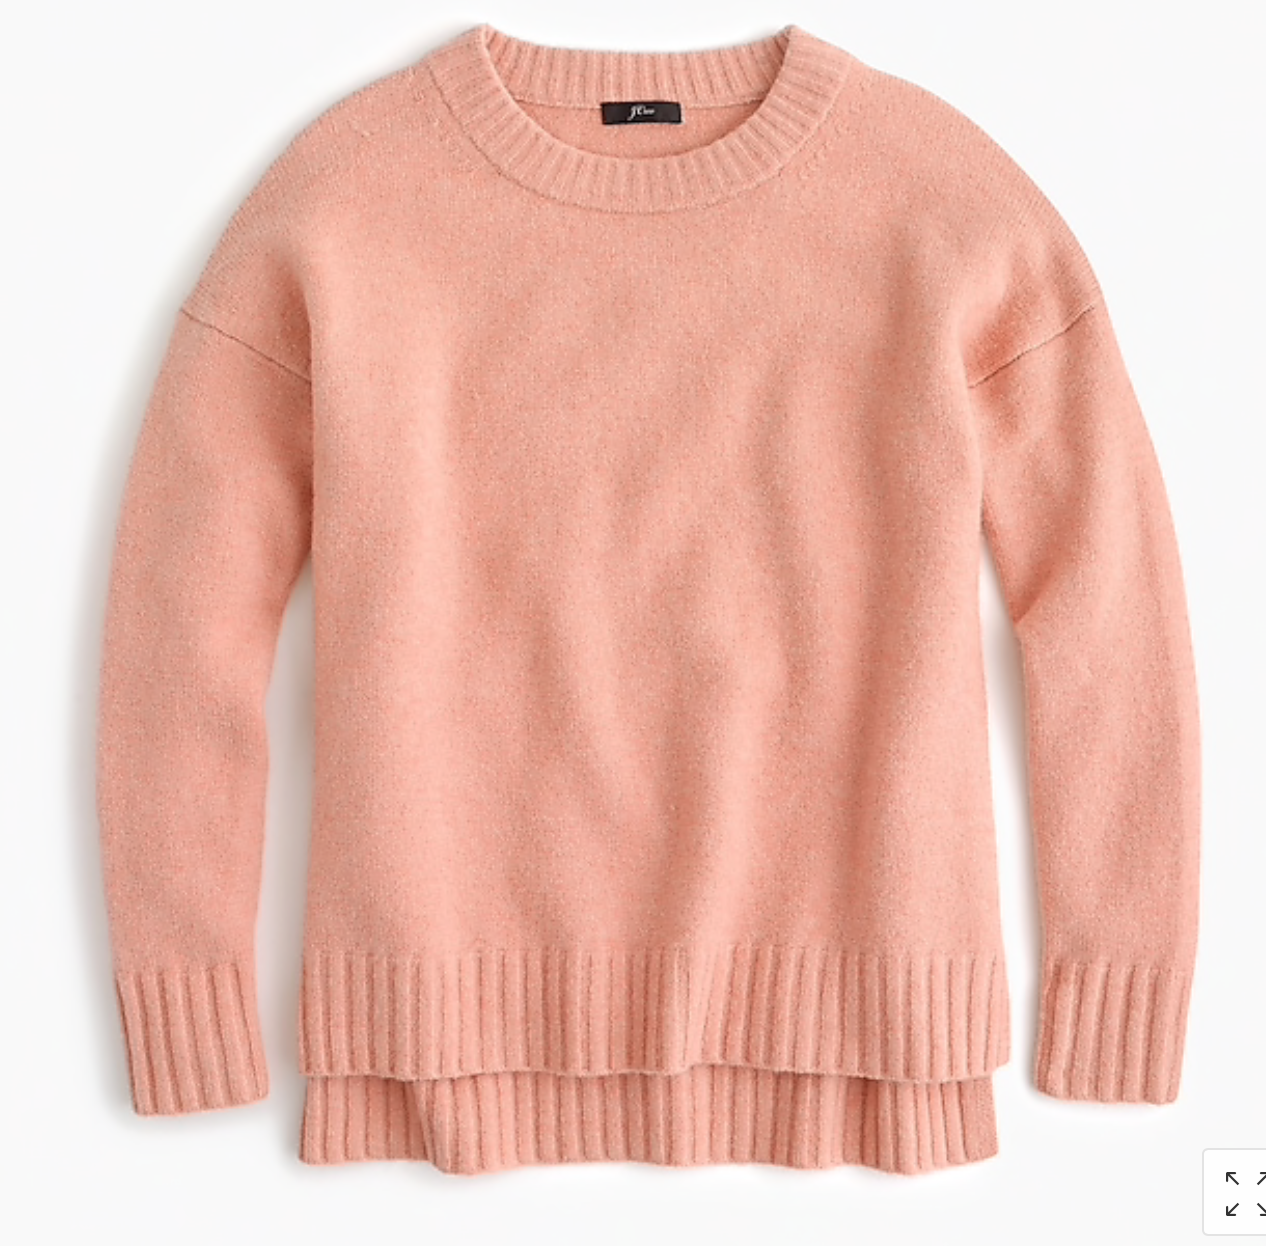 Supersoft Yarn Crewneck Sweater